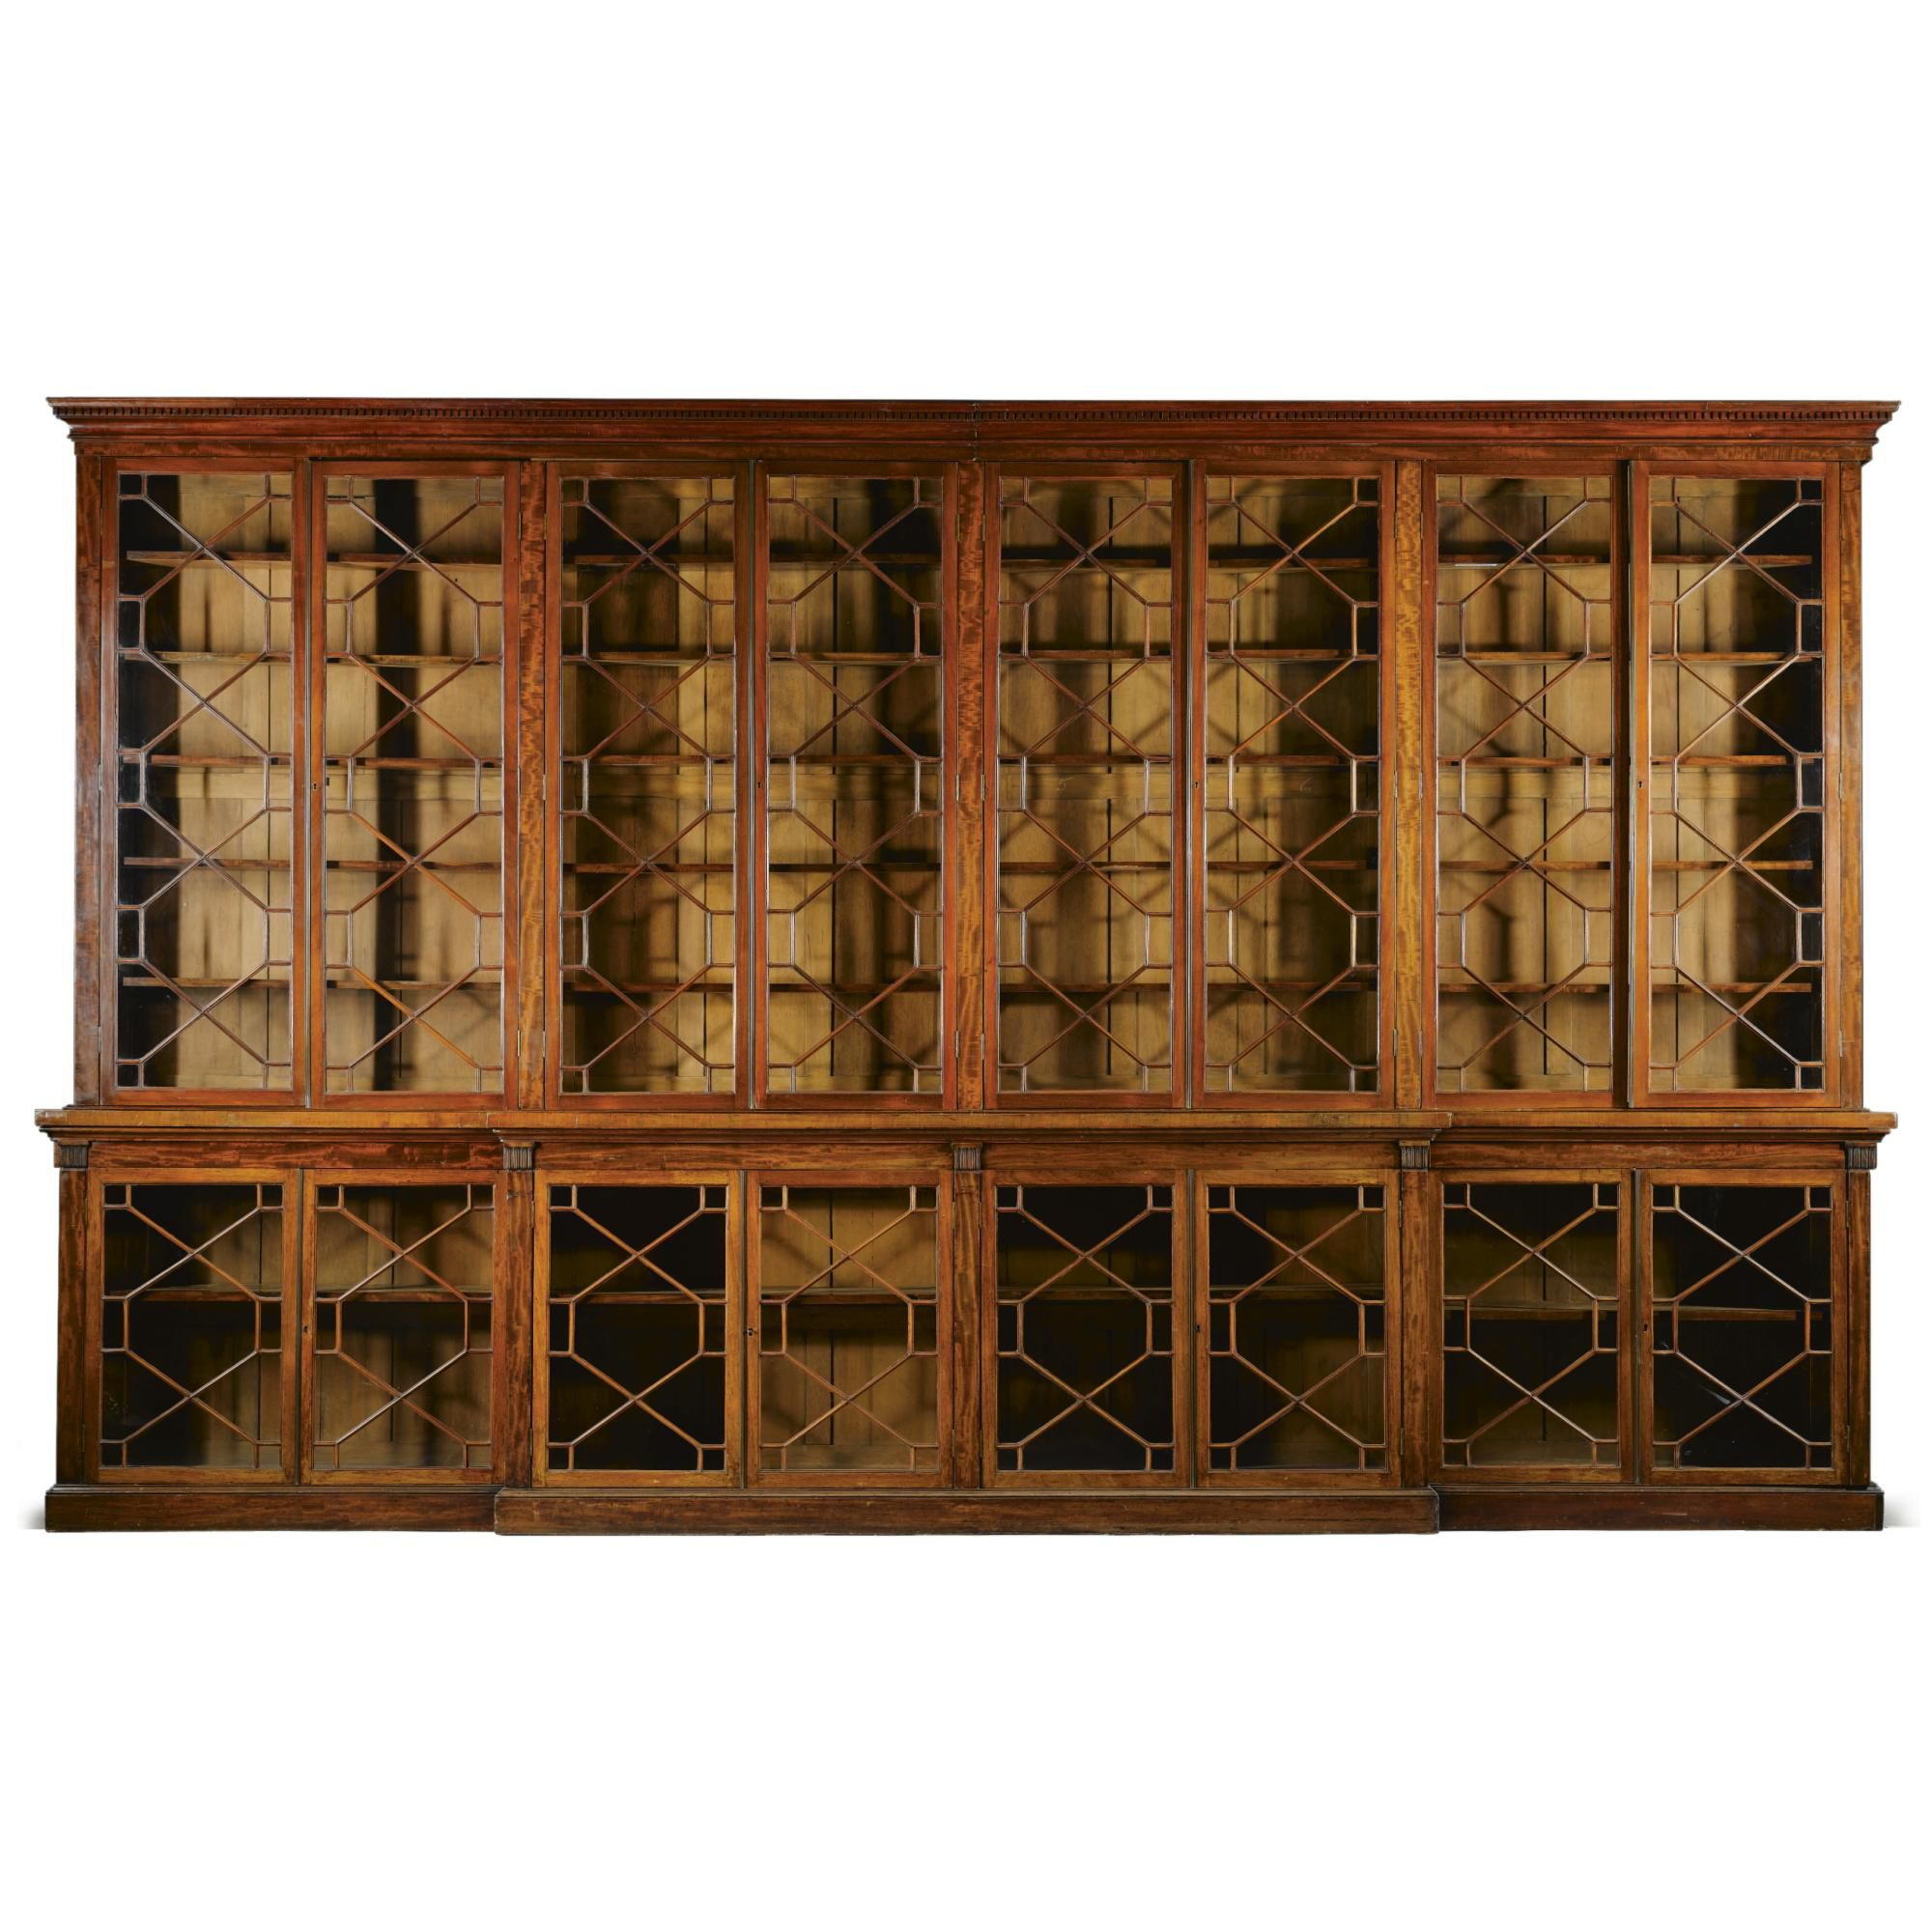 Mahogany Home Library Office: A Large Mahogany Library Breakfront Bookcase 2nd Quarter